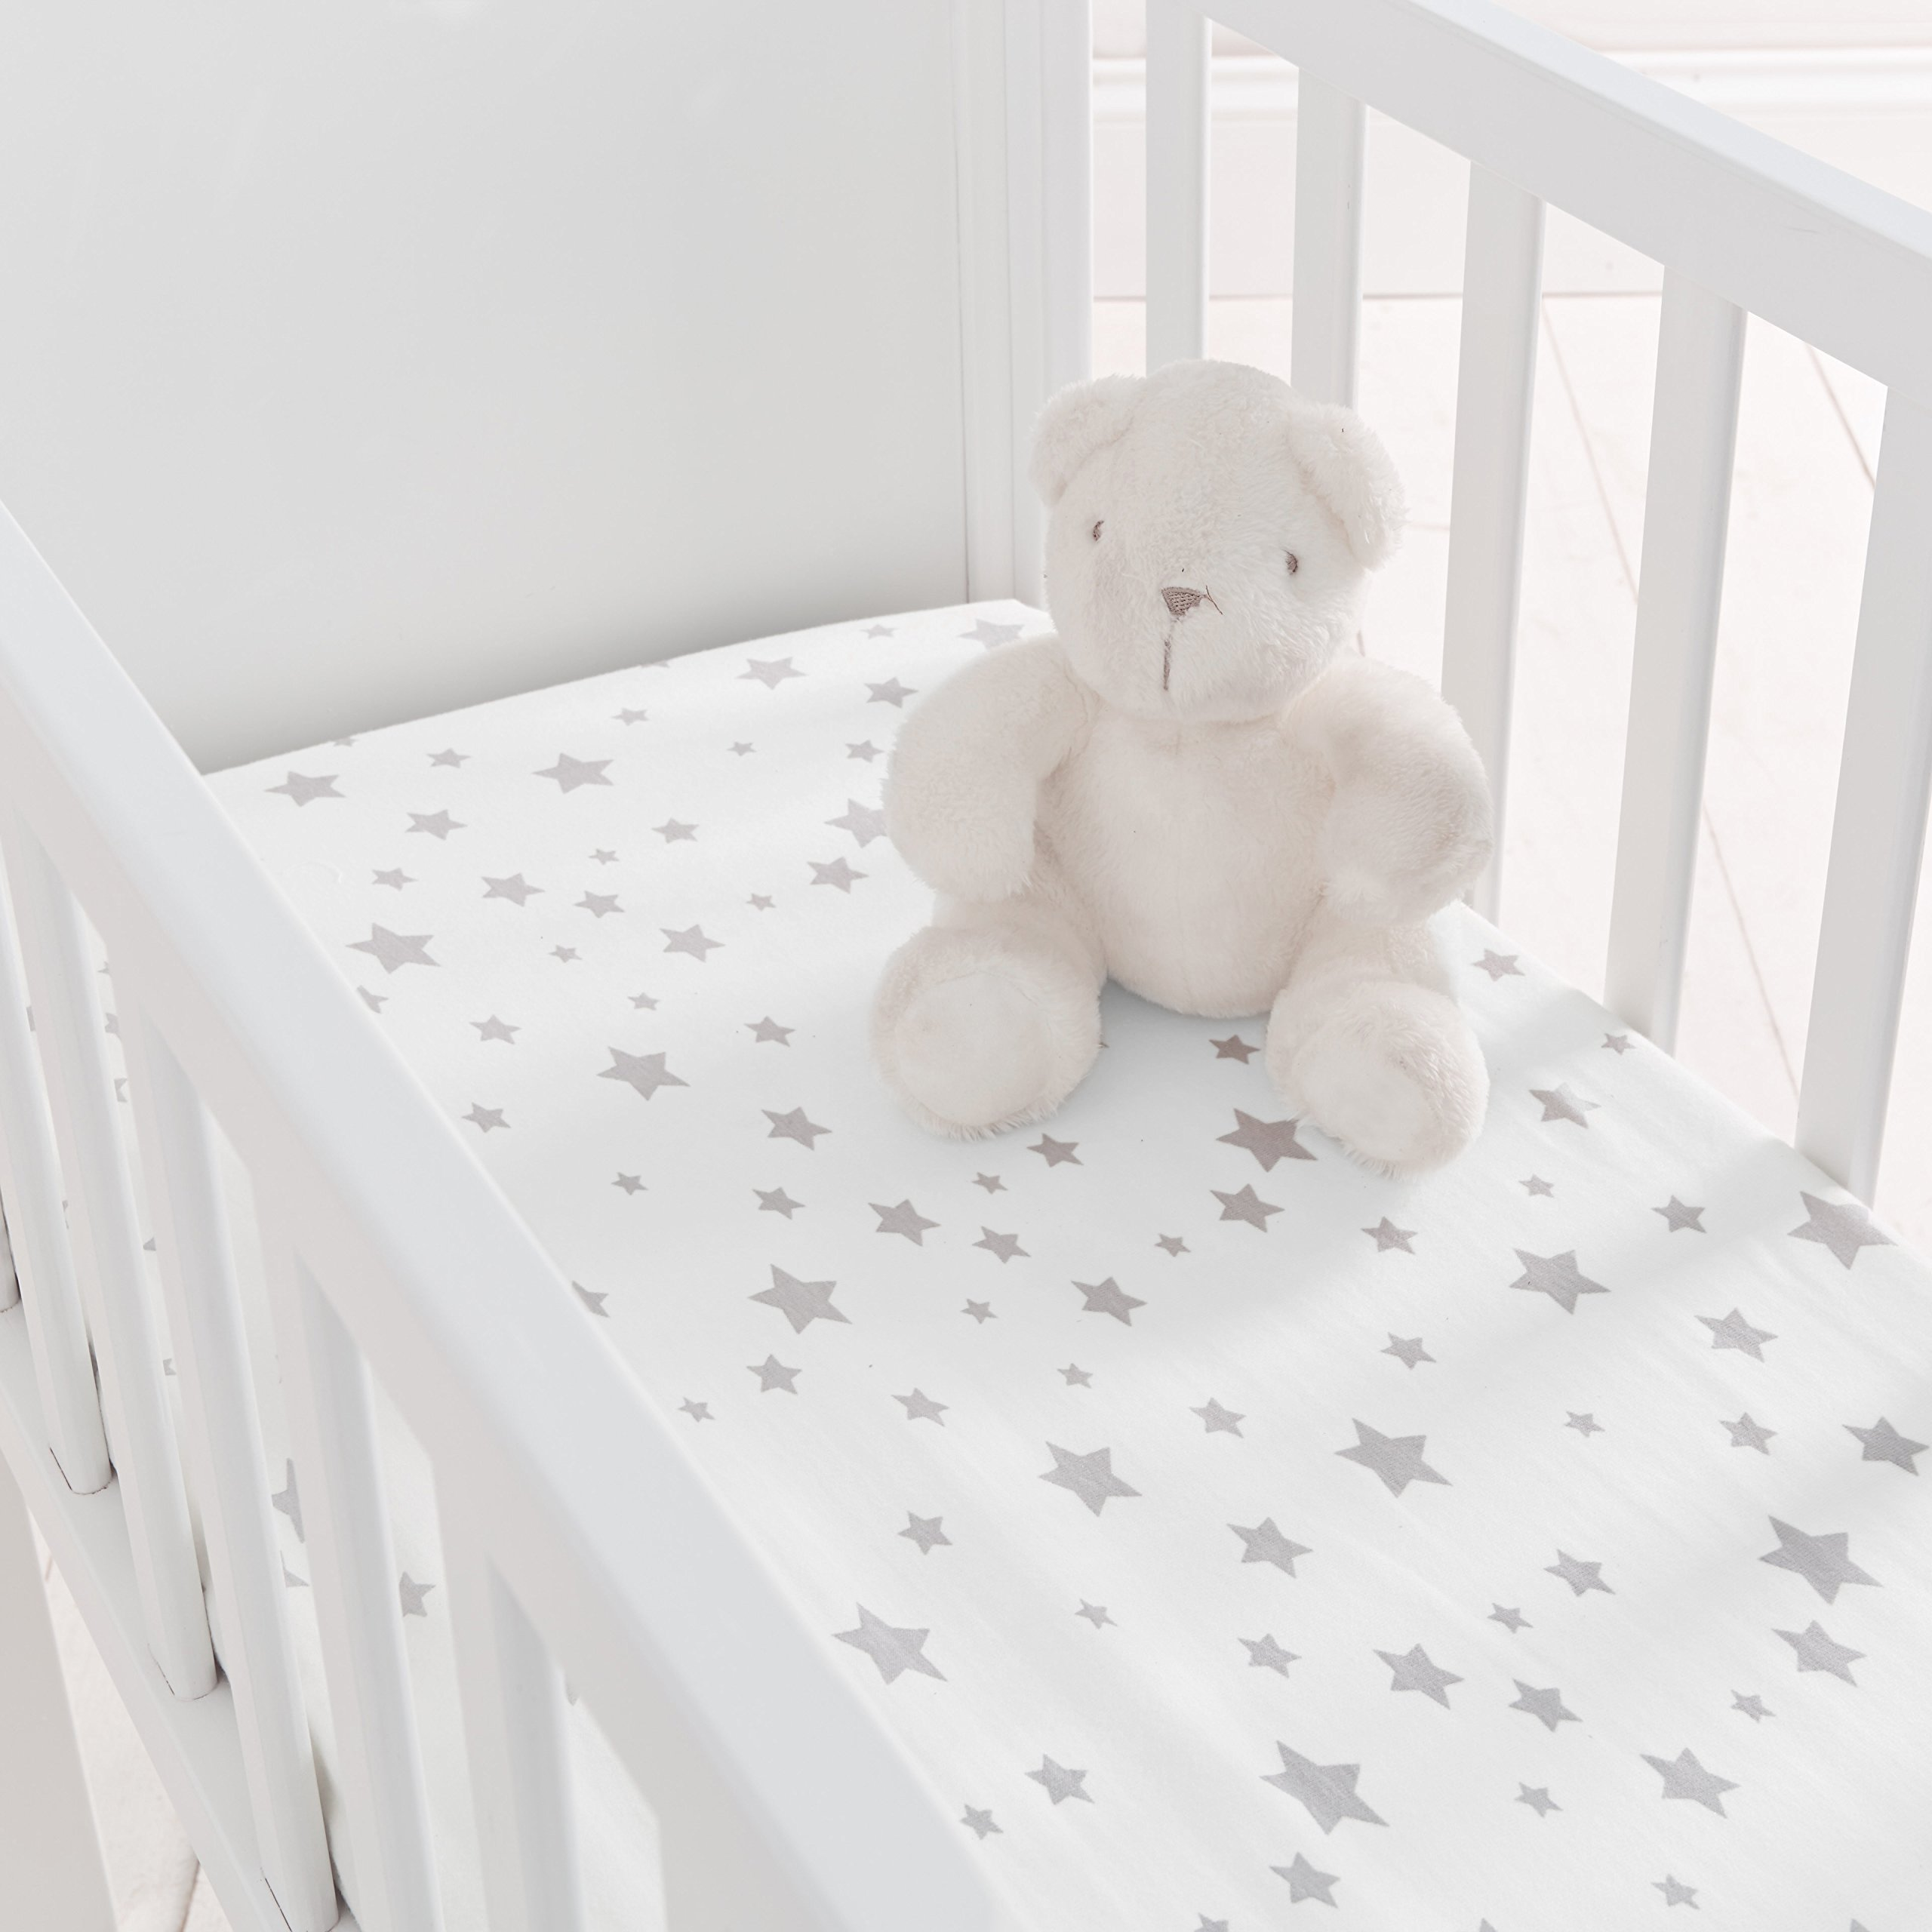 Crib Anti Fungal and Breathable Cover Bassinet or Cradle 89cm x 38cm x 5cm Crib Mattress with Waterproof Quilted Removable Cover for Bedside Cot